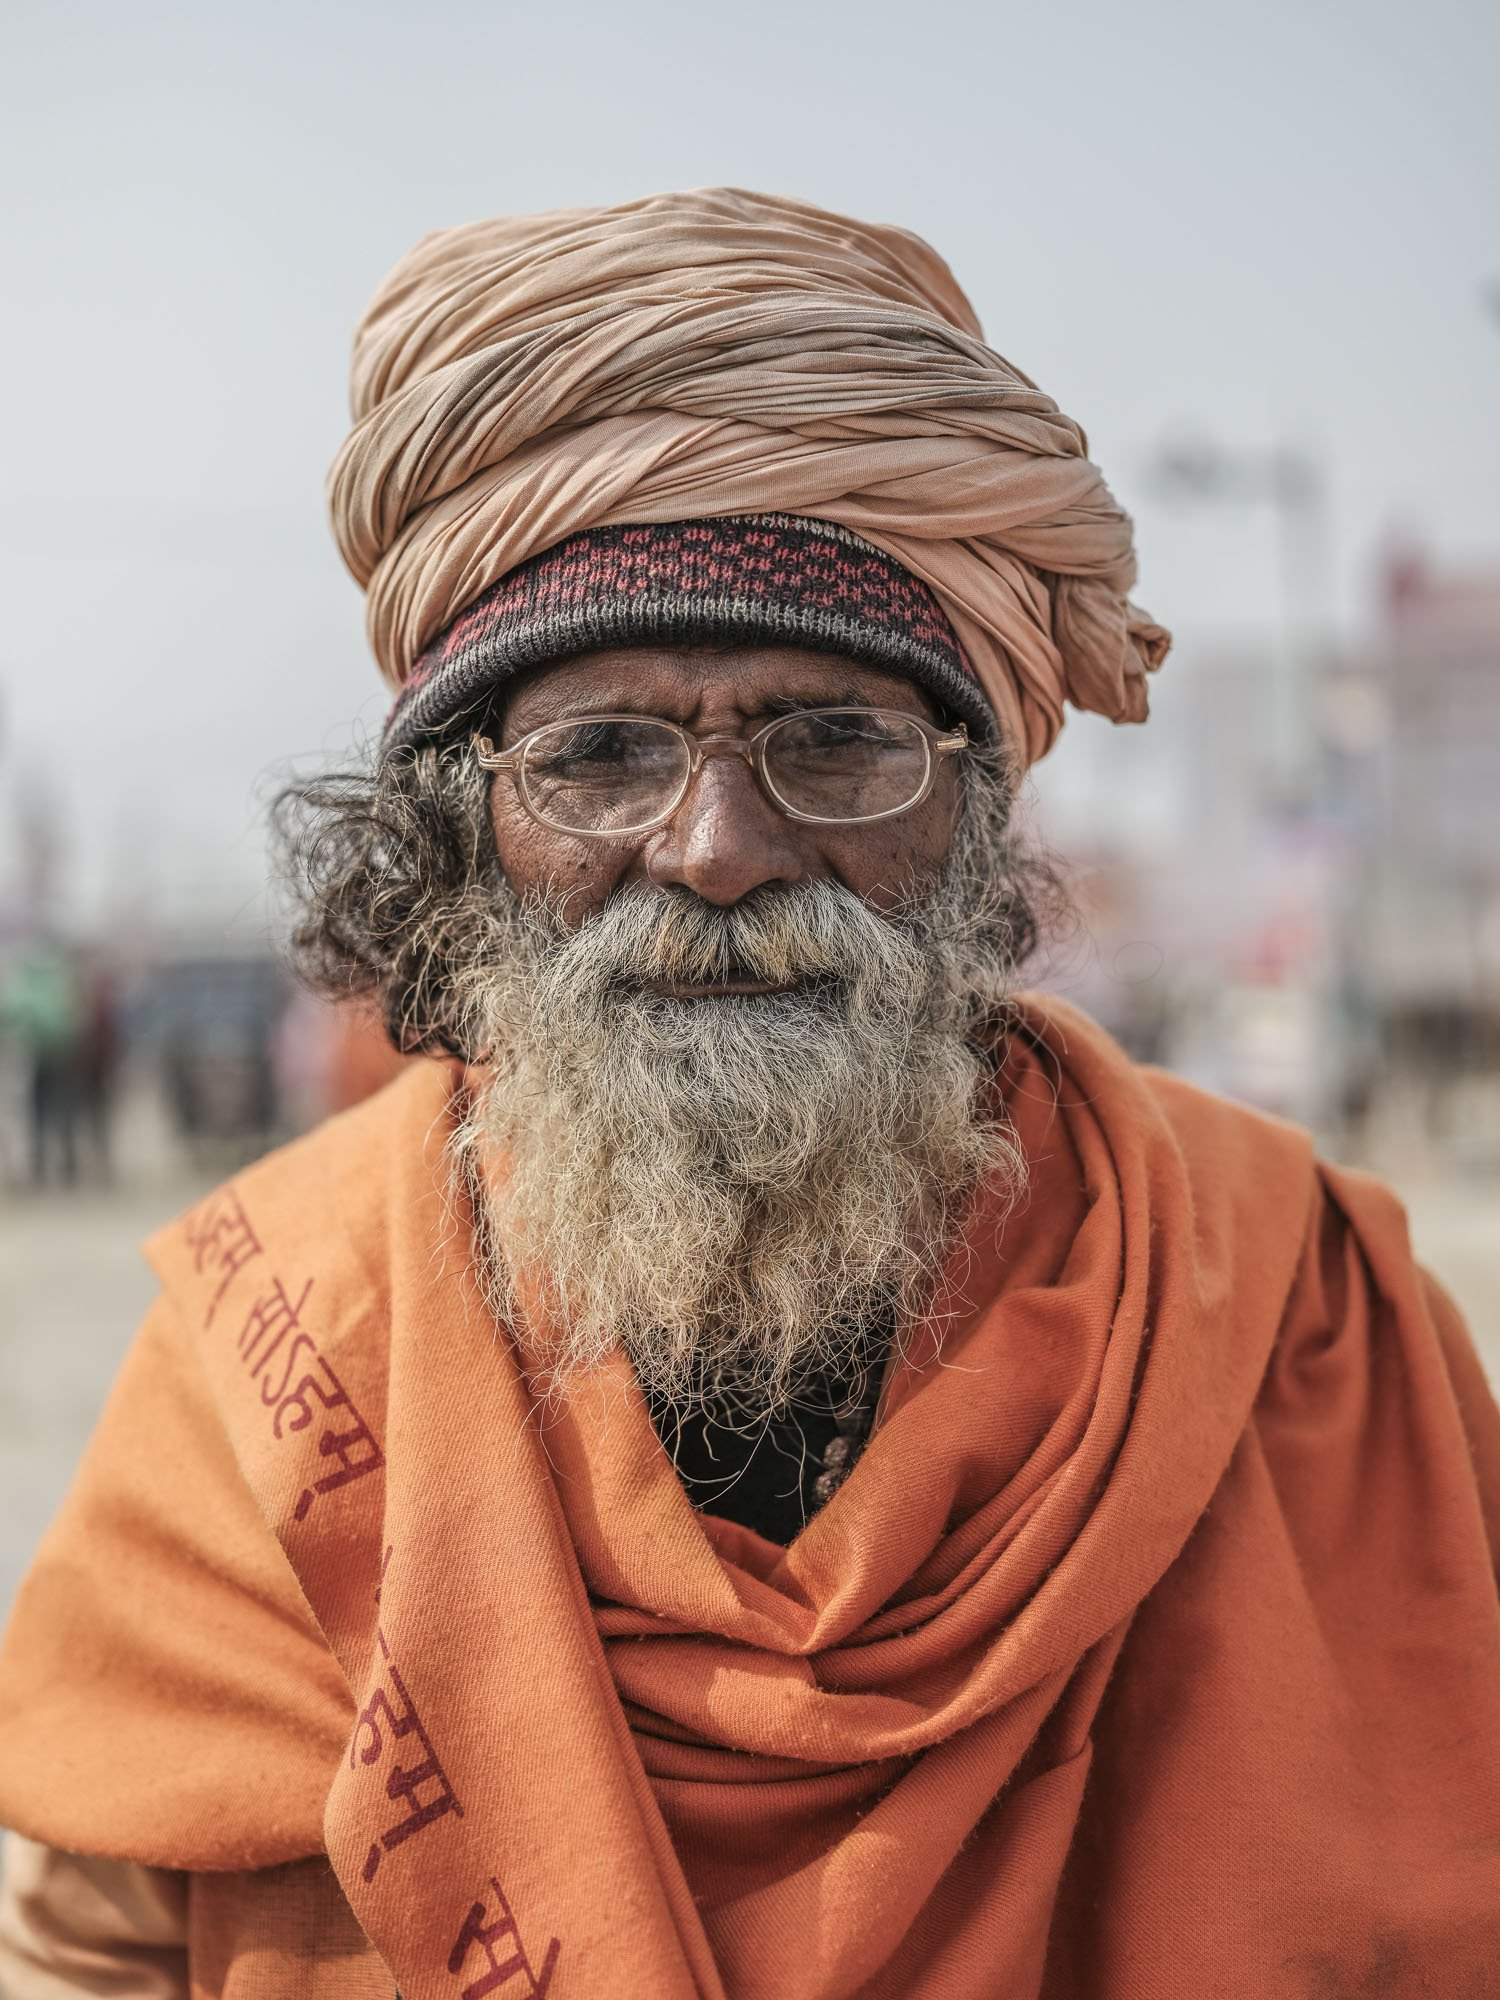 portrait indian man orange pilgrims Kumbh mela 2019 India Allahabad Prayagraj Ardh hindu religious Festival event rivers photographer jose jeuland photography